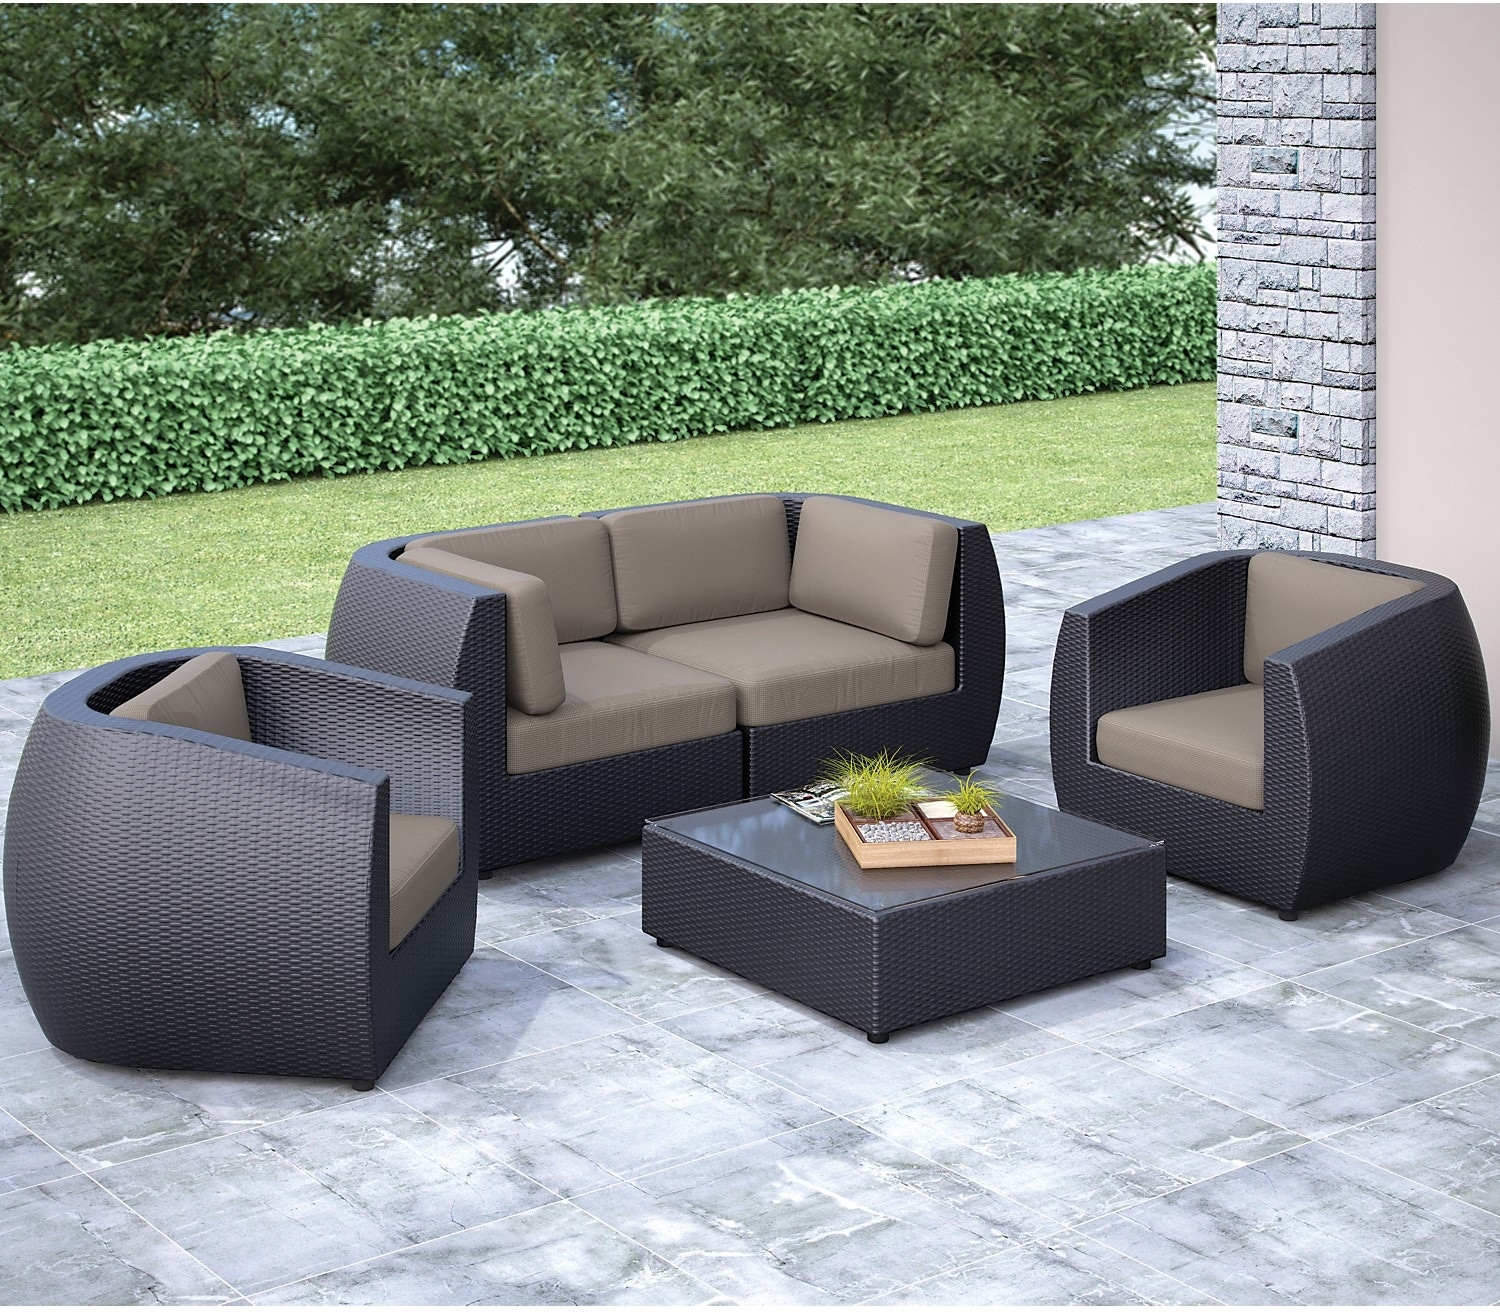 seattle conversation patio set  loveseat  the brick - seattle conversation patio set  loveseat